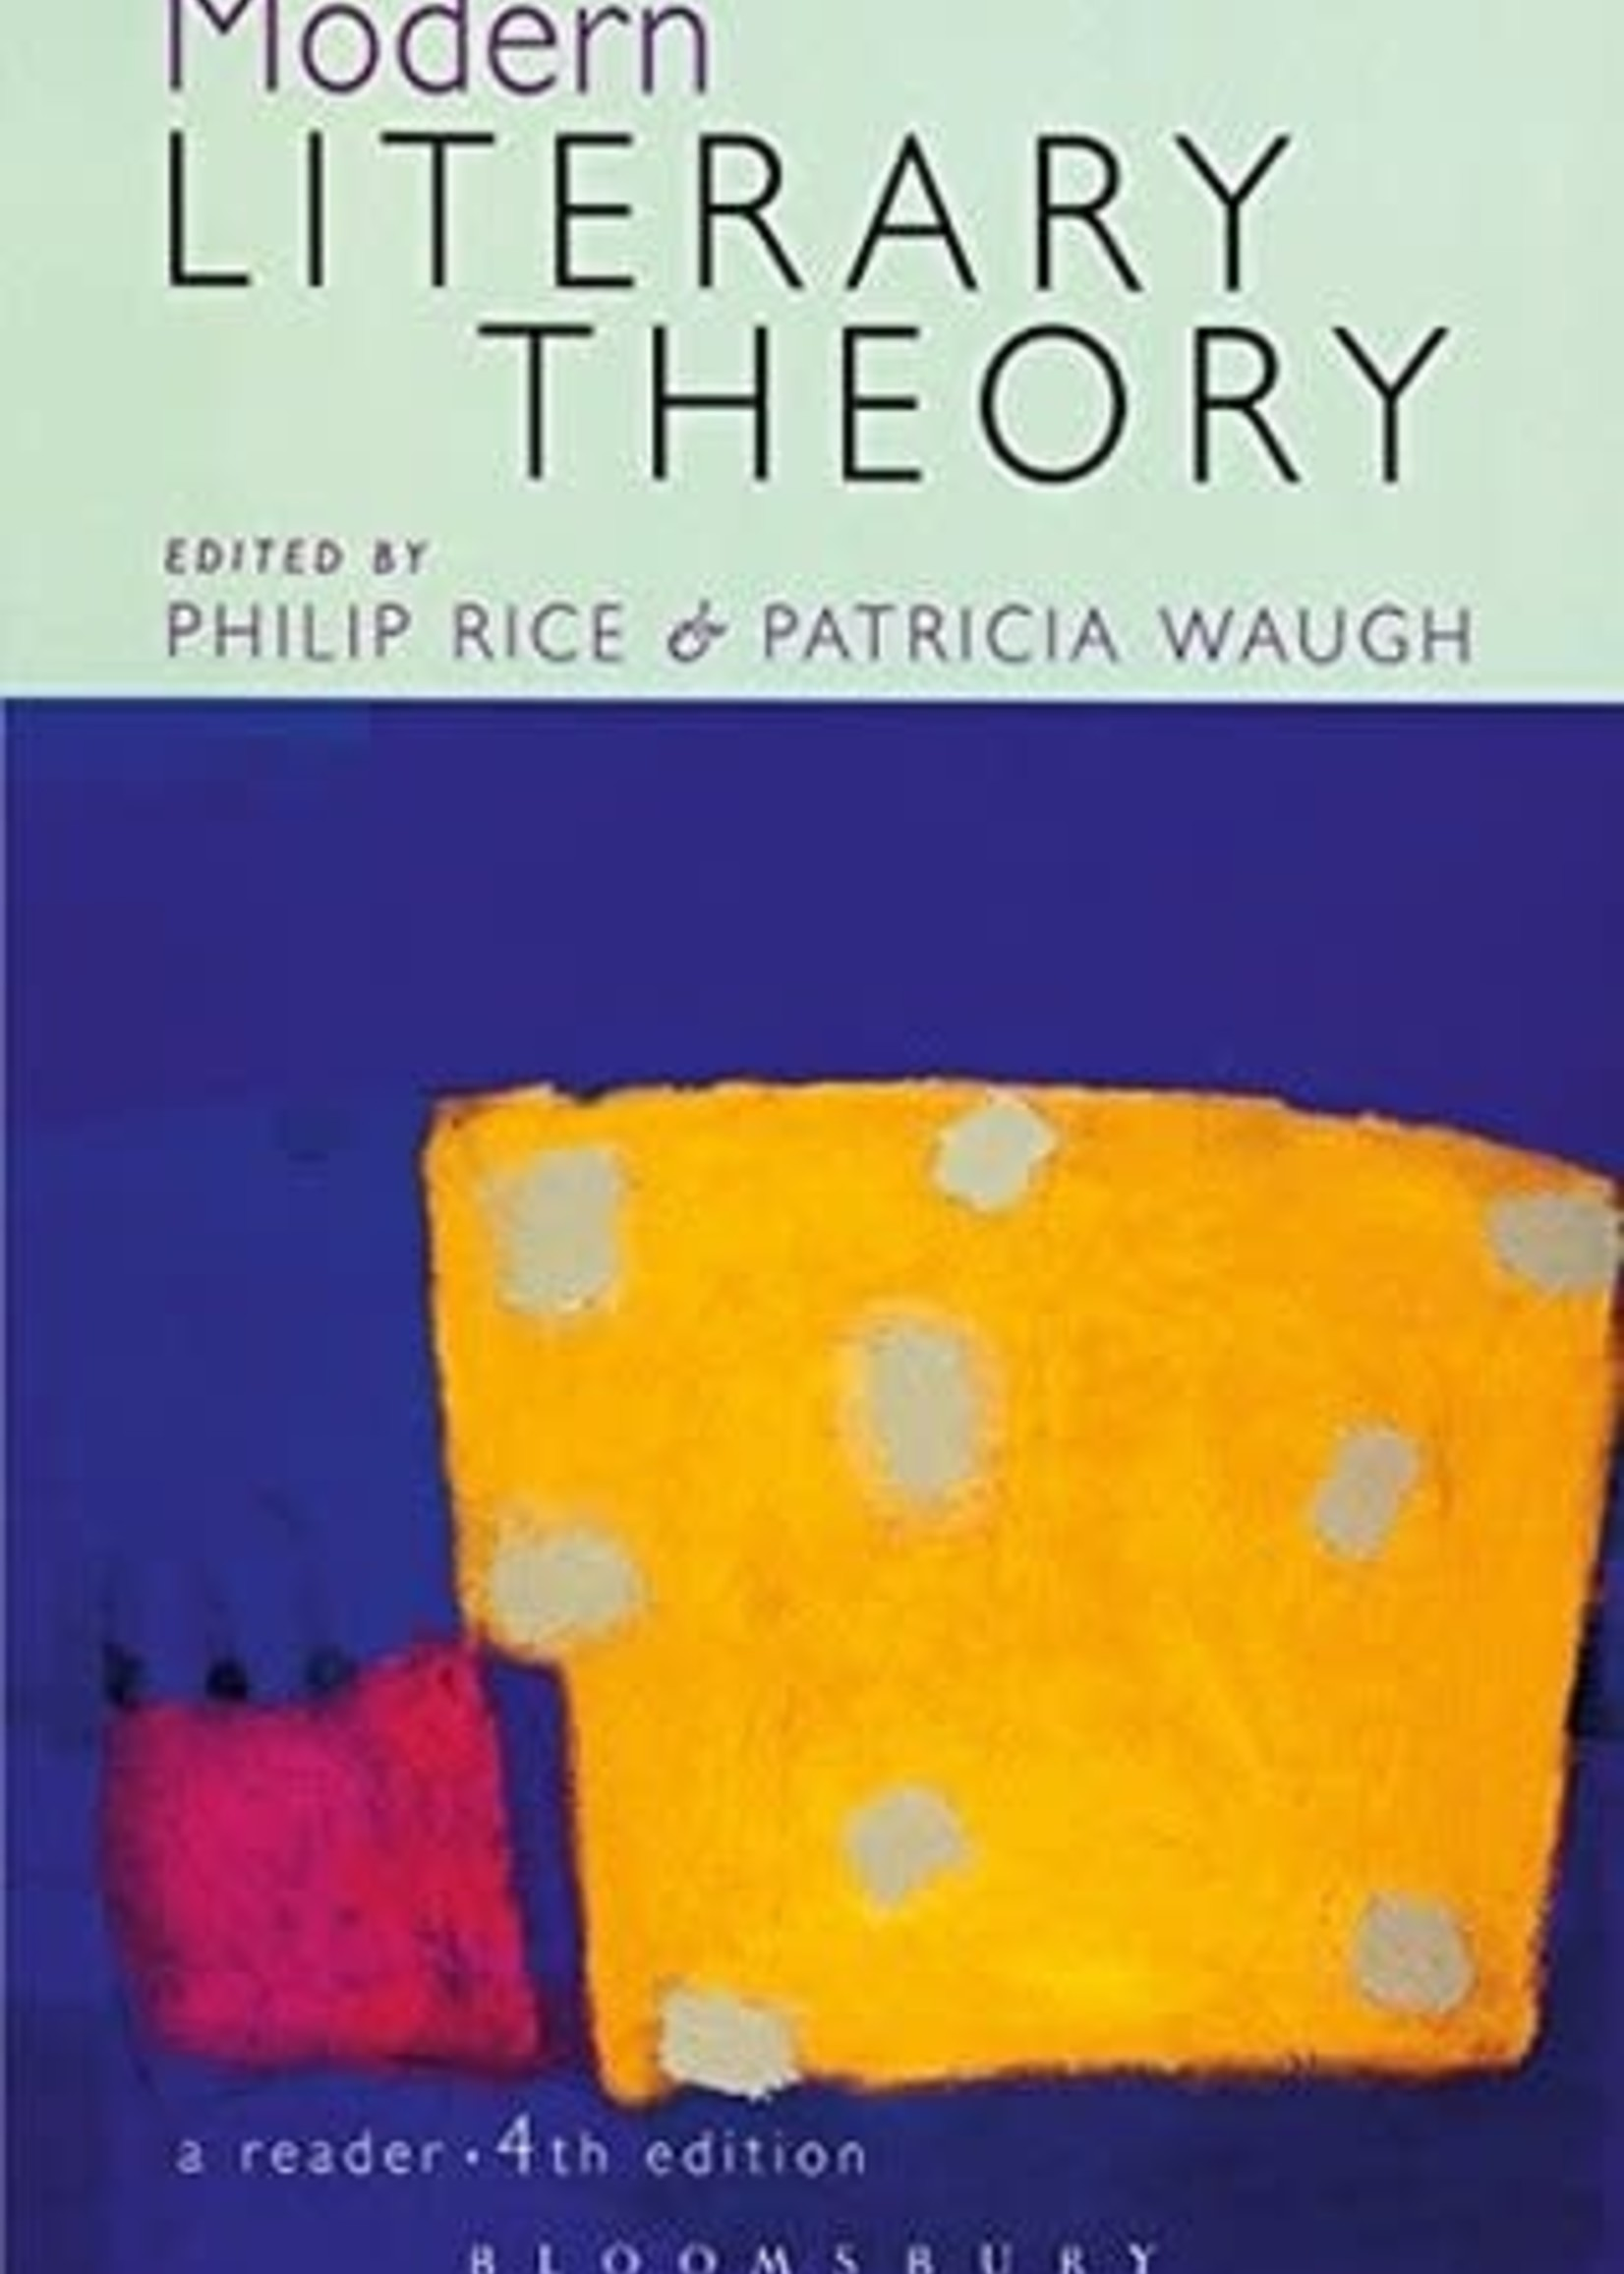 USED - Modern Literary Theory: 4th Edition by Philip Rice, Patricia Waugh